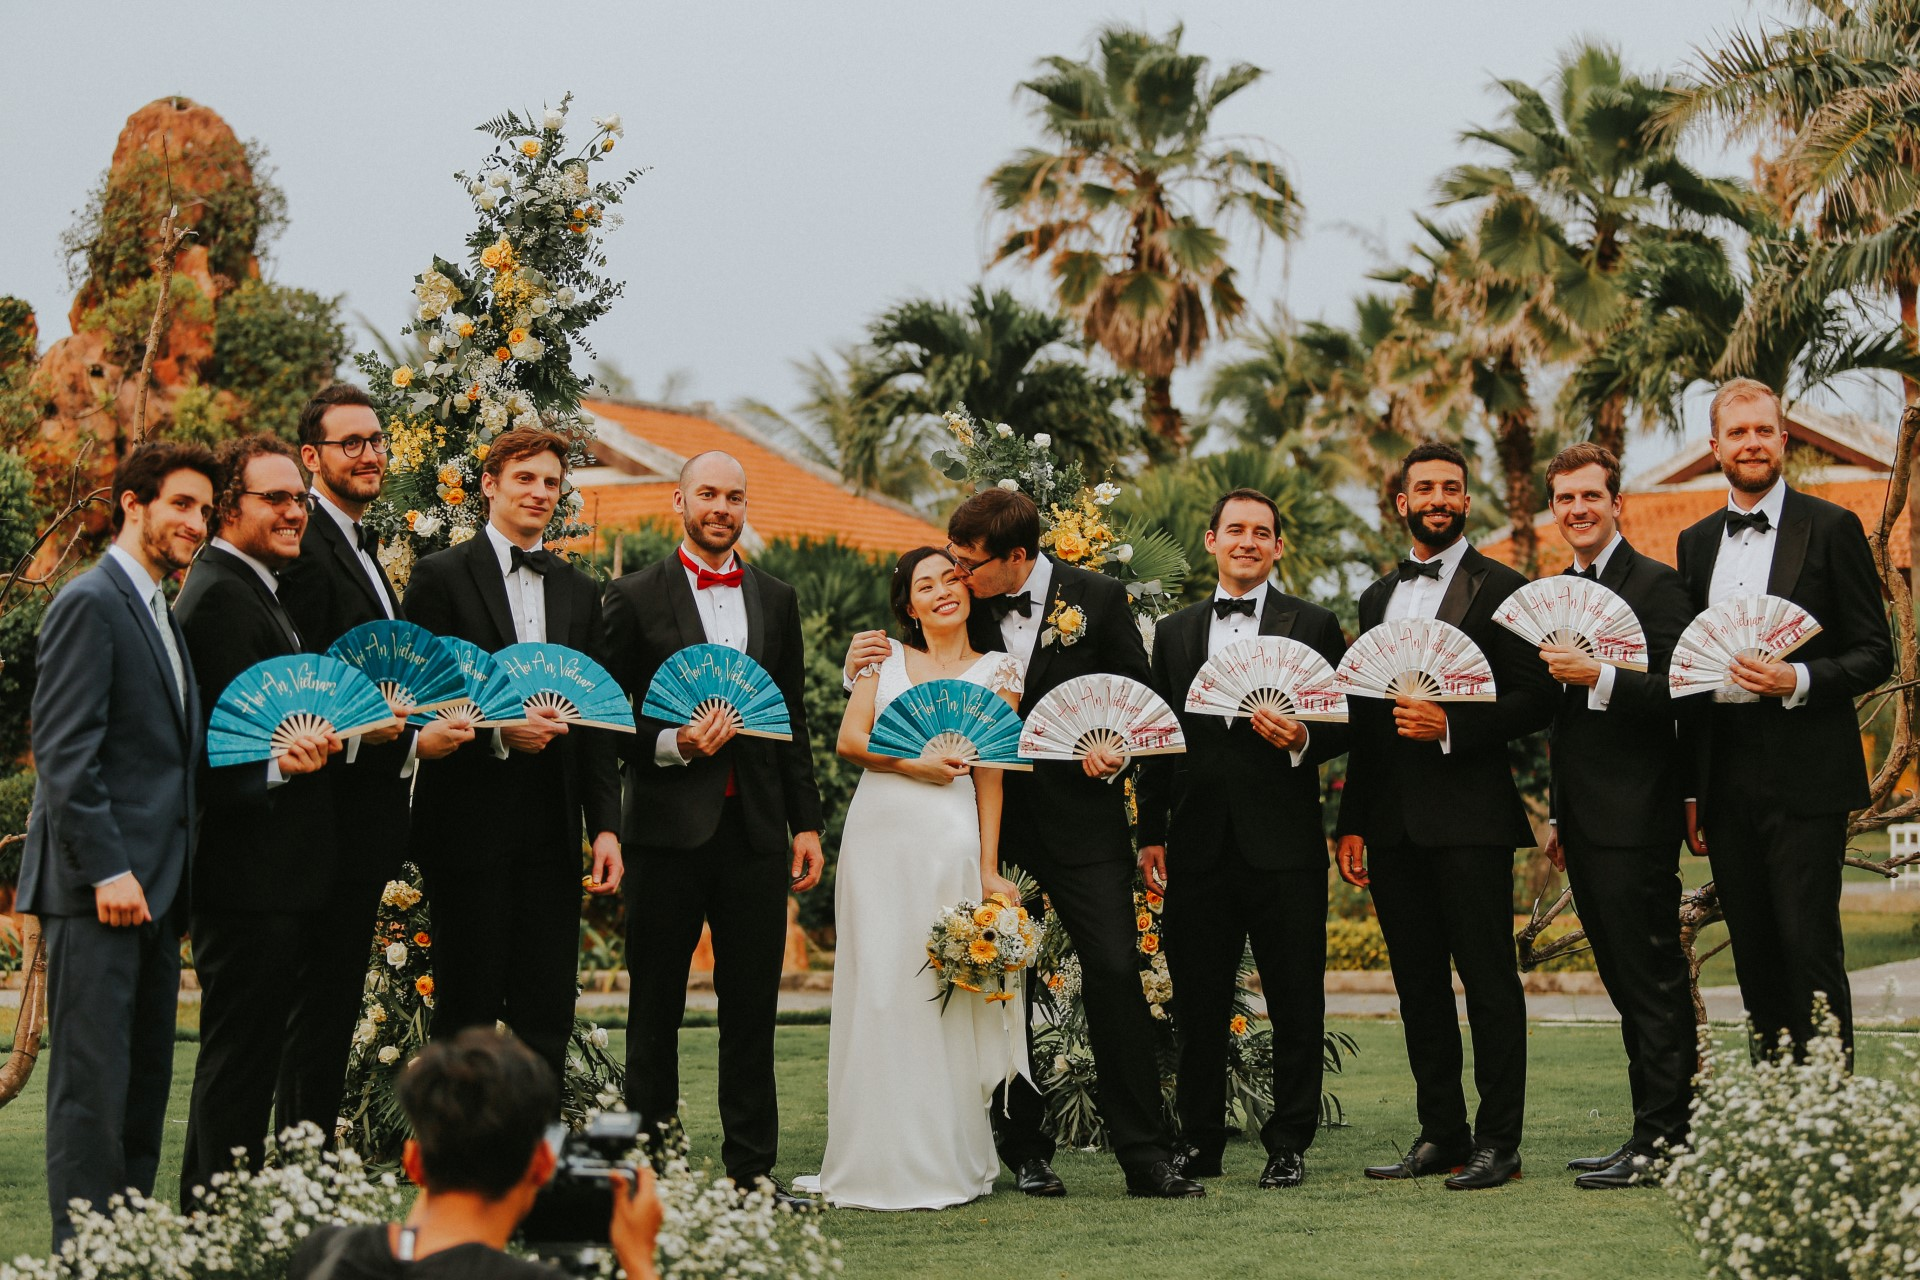 anh phan photographer | hoi an wedding photographer | hoian wedding ceremony | wedding in hoi an tropical beach resort | da nang photographer | da nang wedding photographer | da nang photographer | vietnam wedding photographer | vietnam photographer